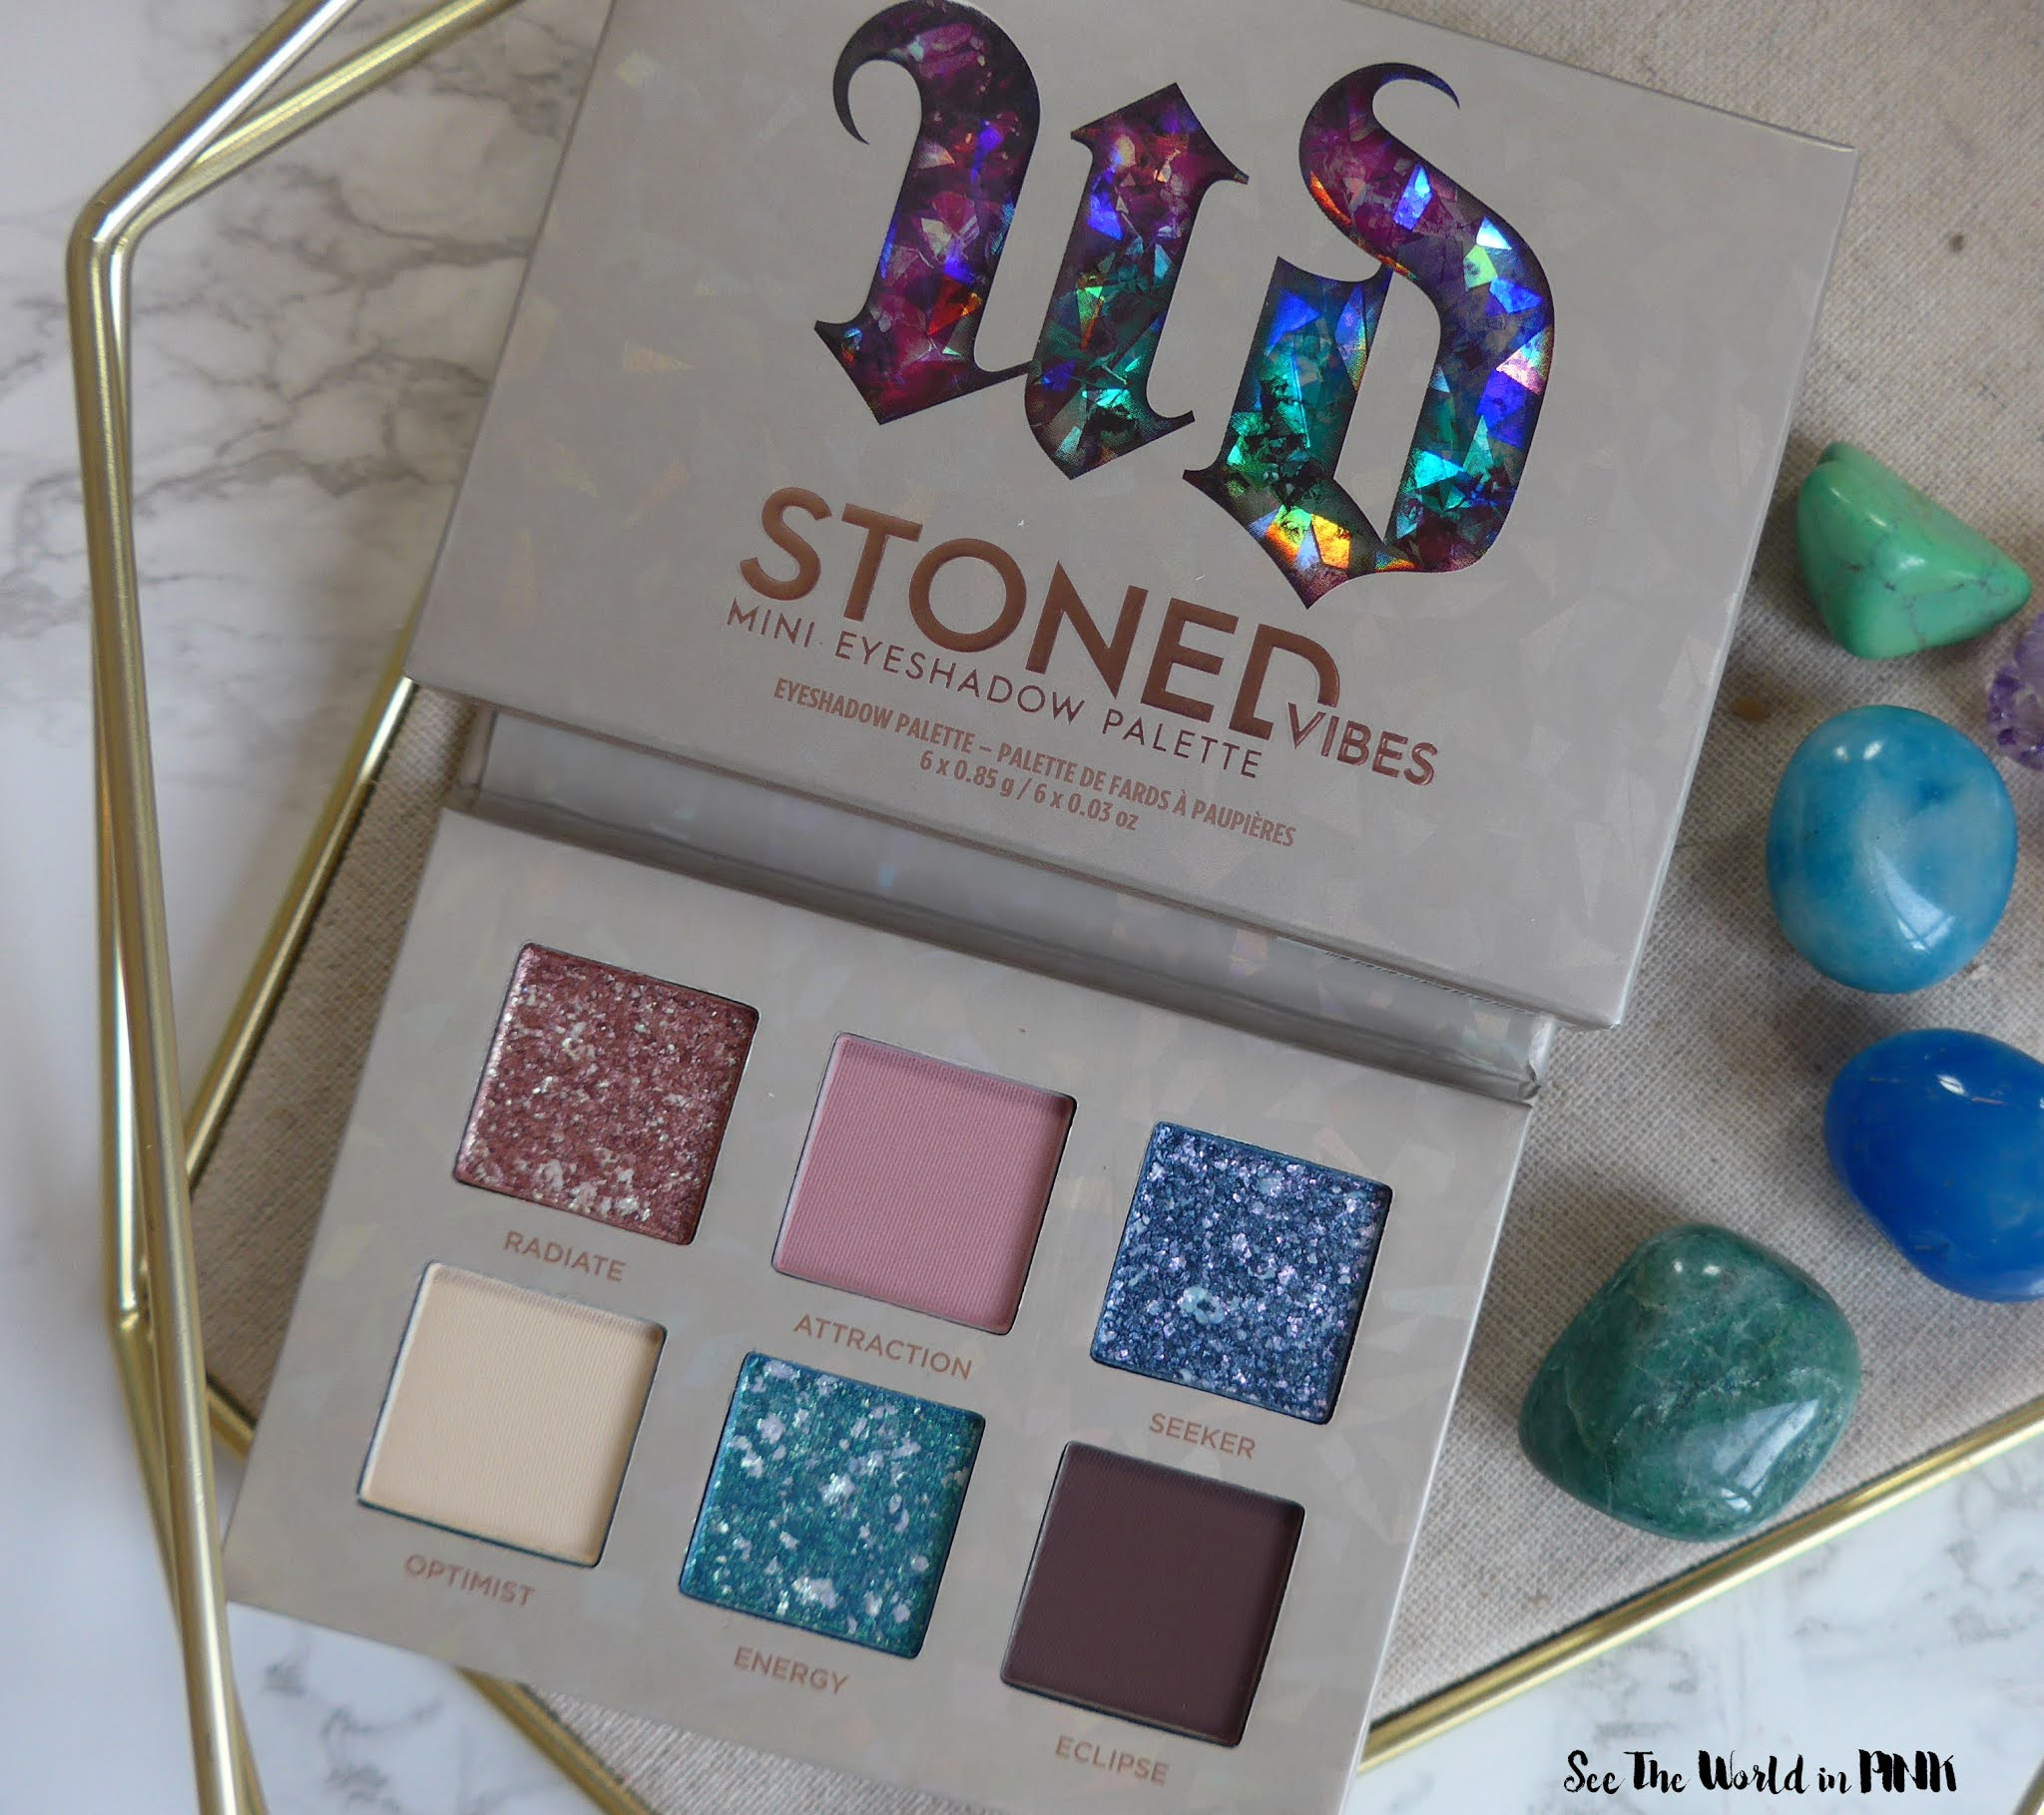 Urban Decay Stoned Vibes Mini Eyeshadow Palette - Swatches, Look and Thoughts